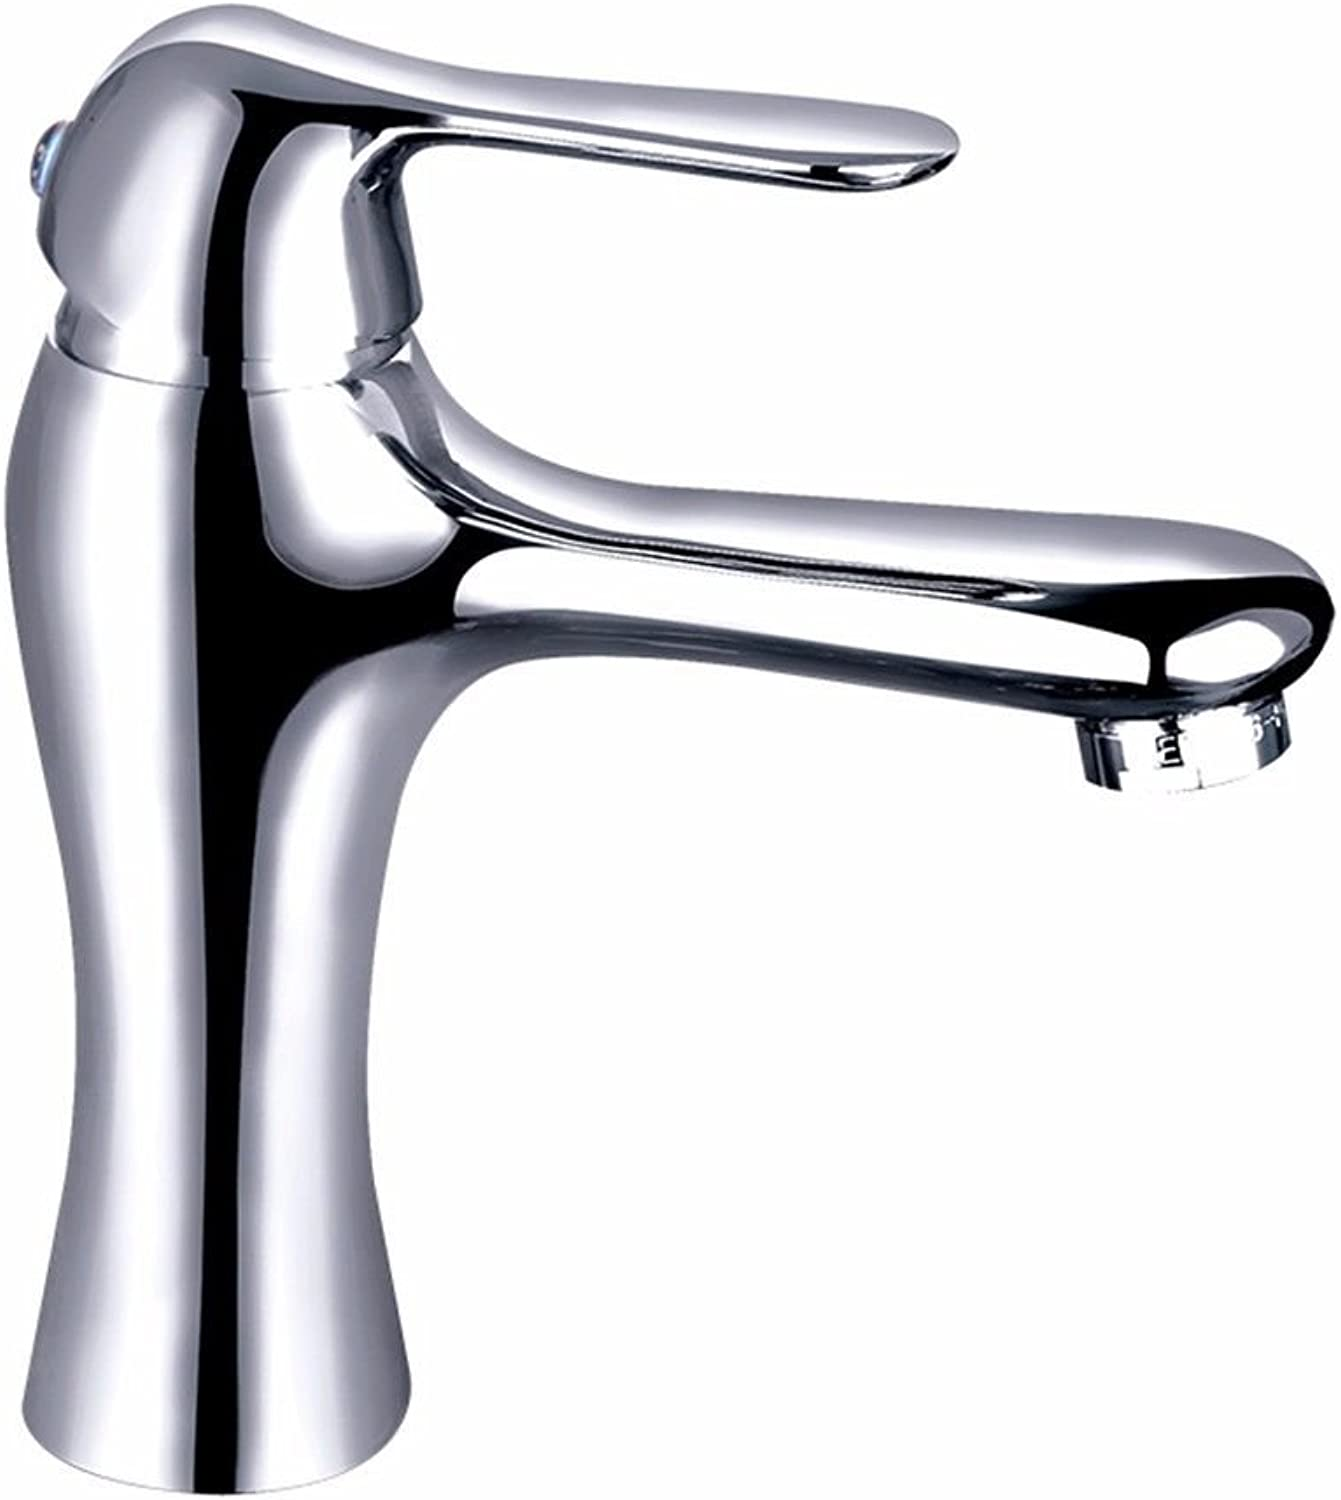 Hlluya Professional Sink Mixer Tap Kitchen Faucet Faucets copper single hole cold-hot sit-in, B